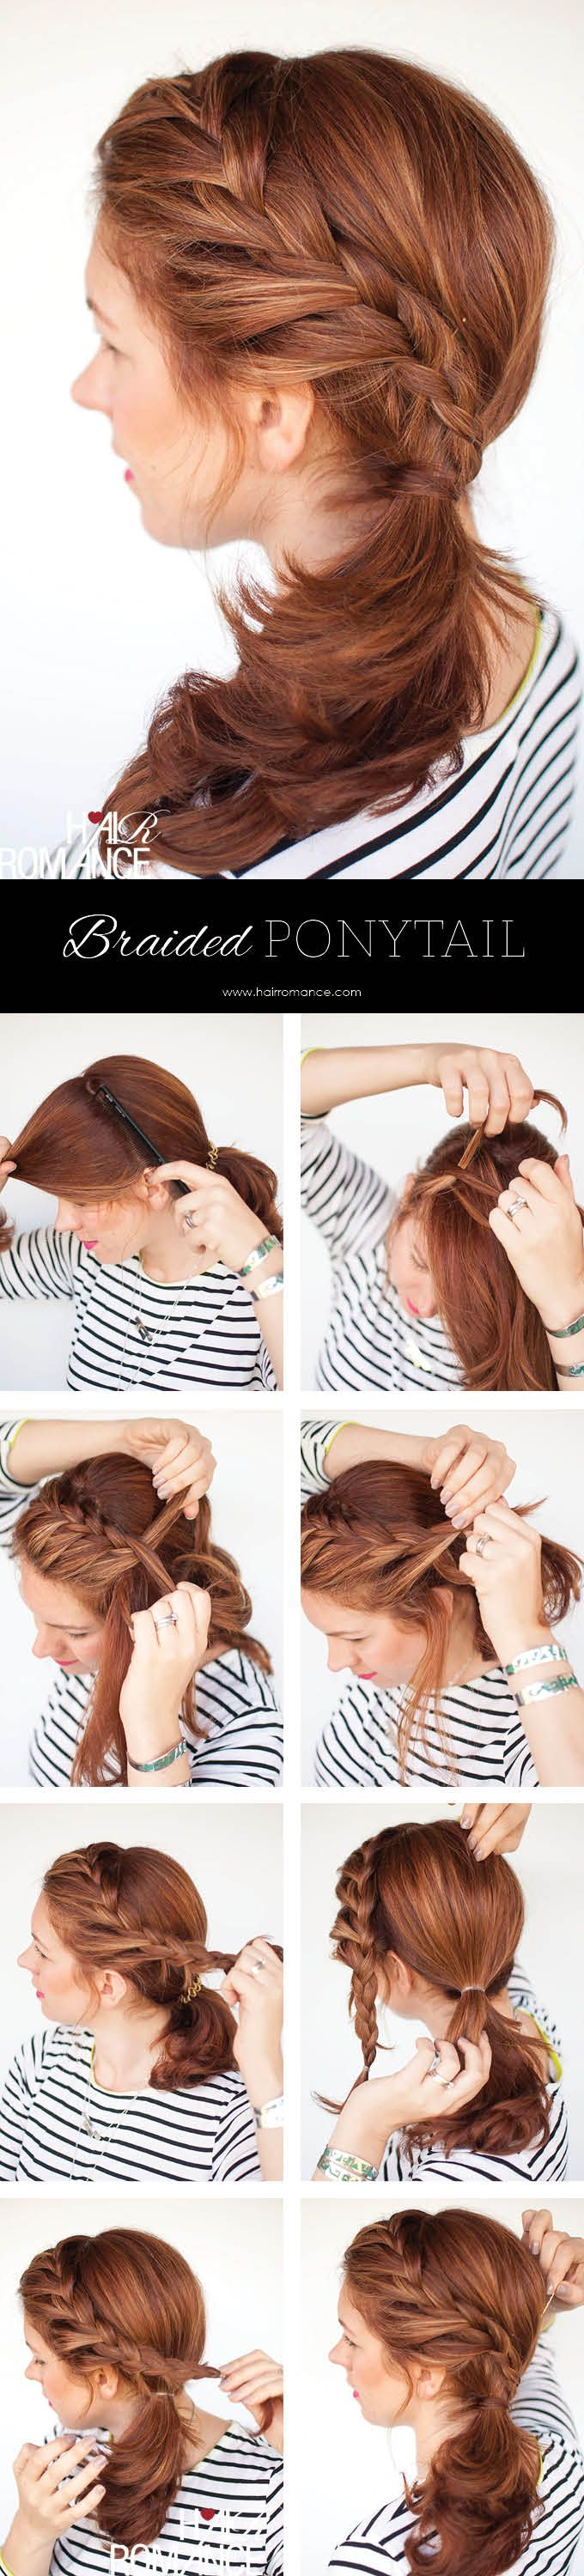 Side Ponytail Hairstyle for Medium Hair